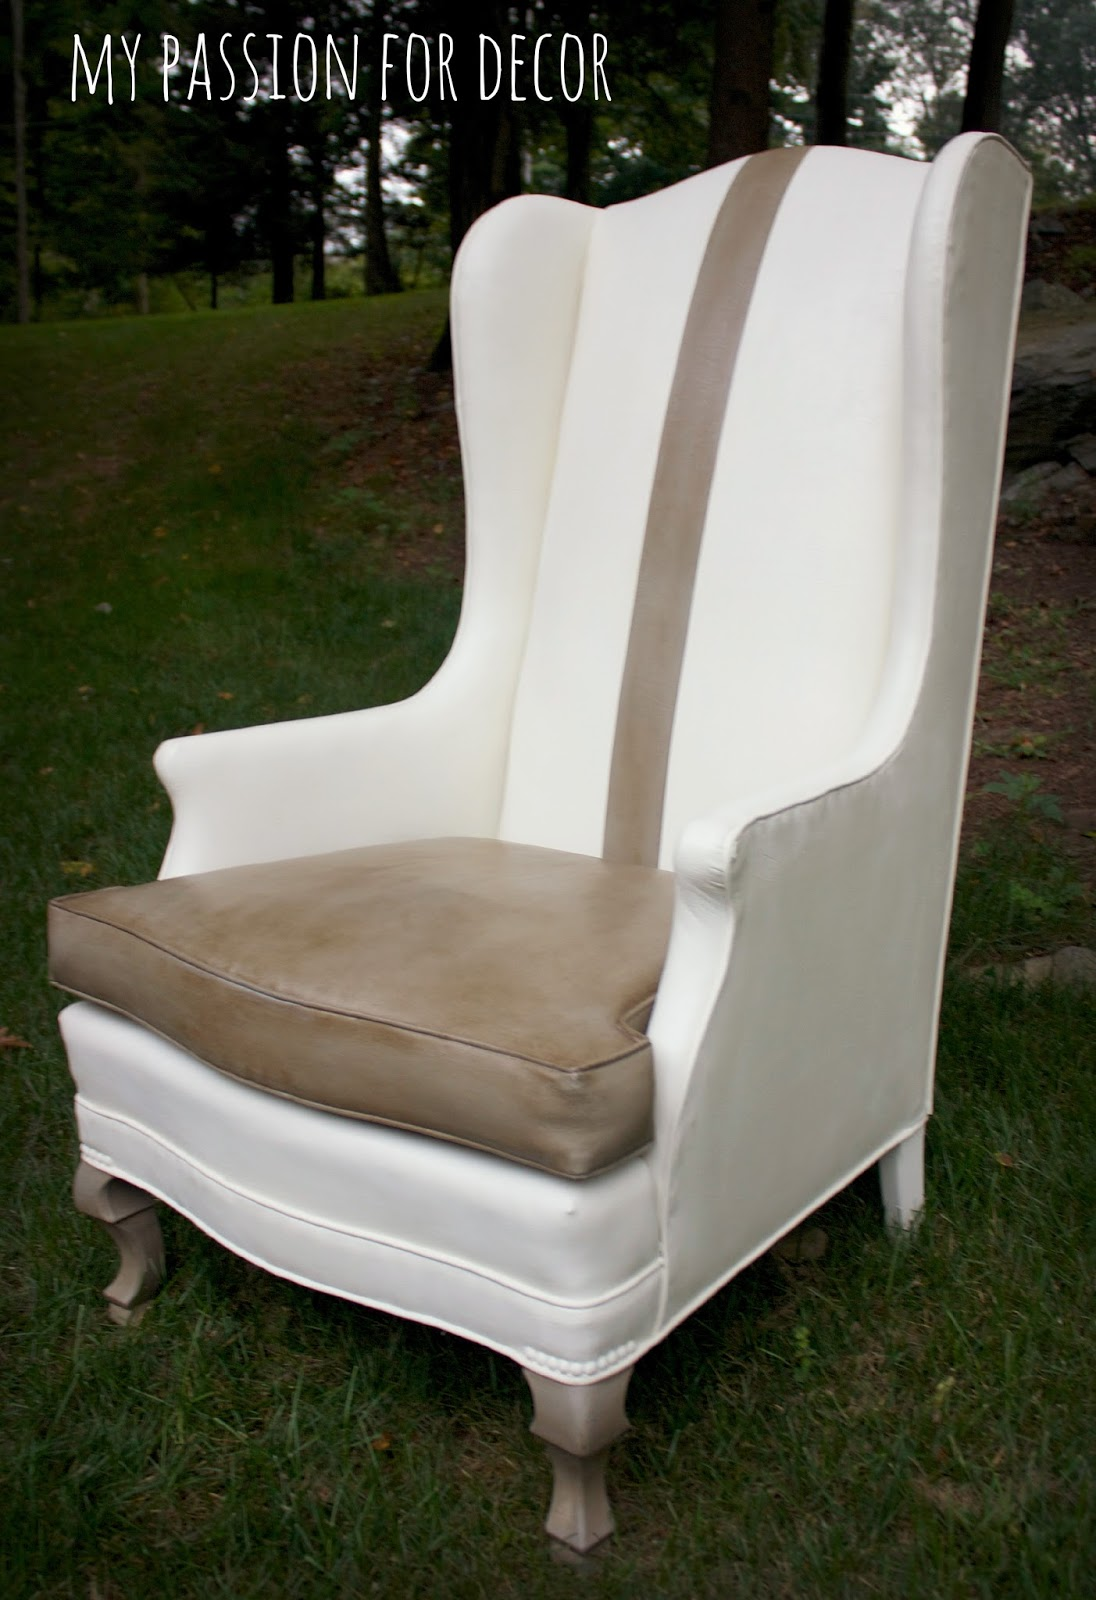 My Passion For Decor A Much Needed Update For An Old Vinyl Chair